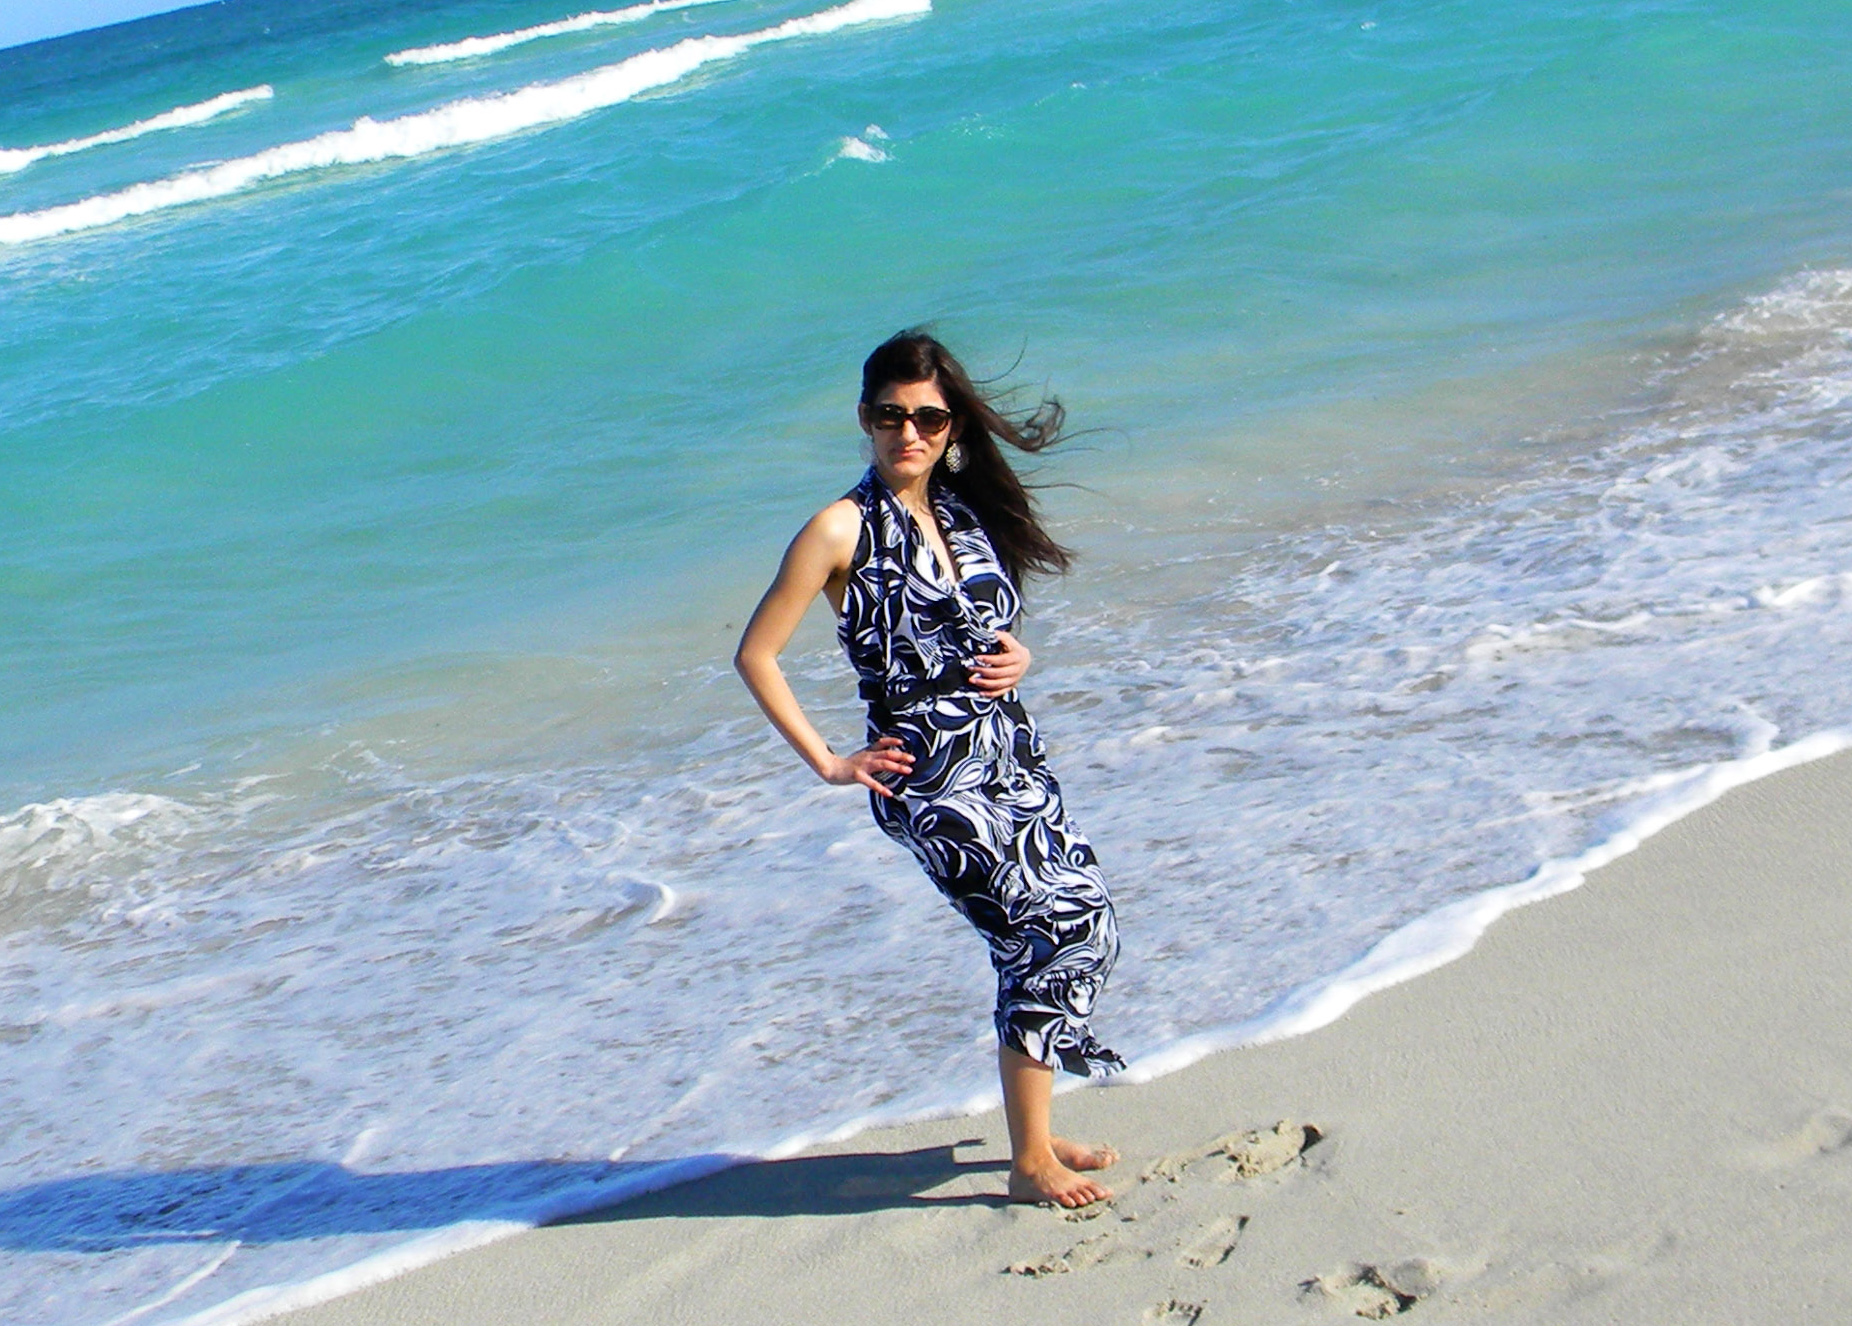 blue_printed_maxi_dress_miami_fashion_girl_woman_young_sexy_hot_chic_fashionable_sunglasses_spring_break